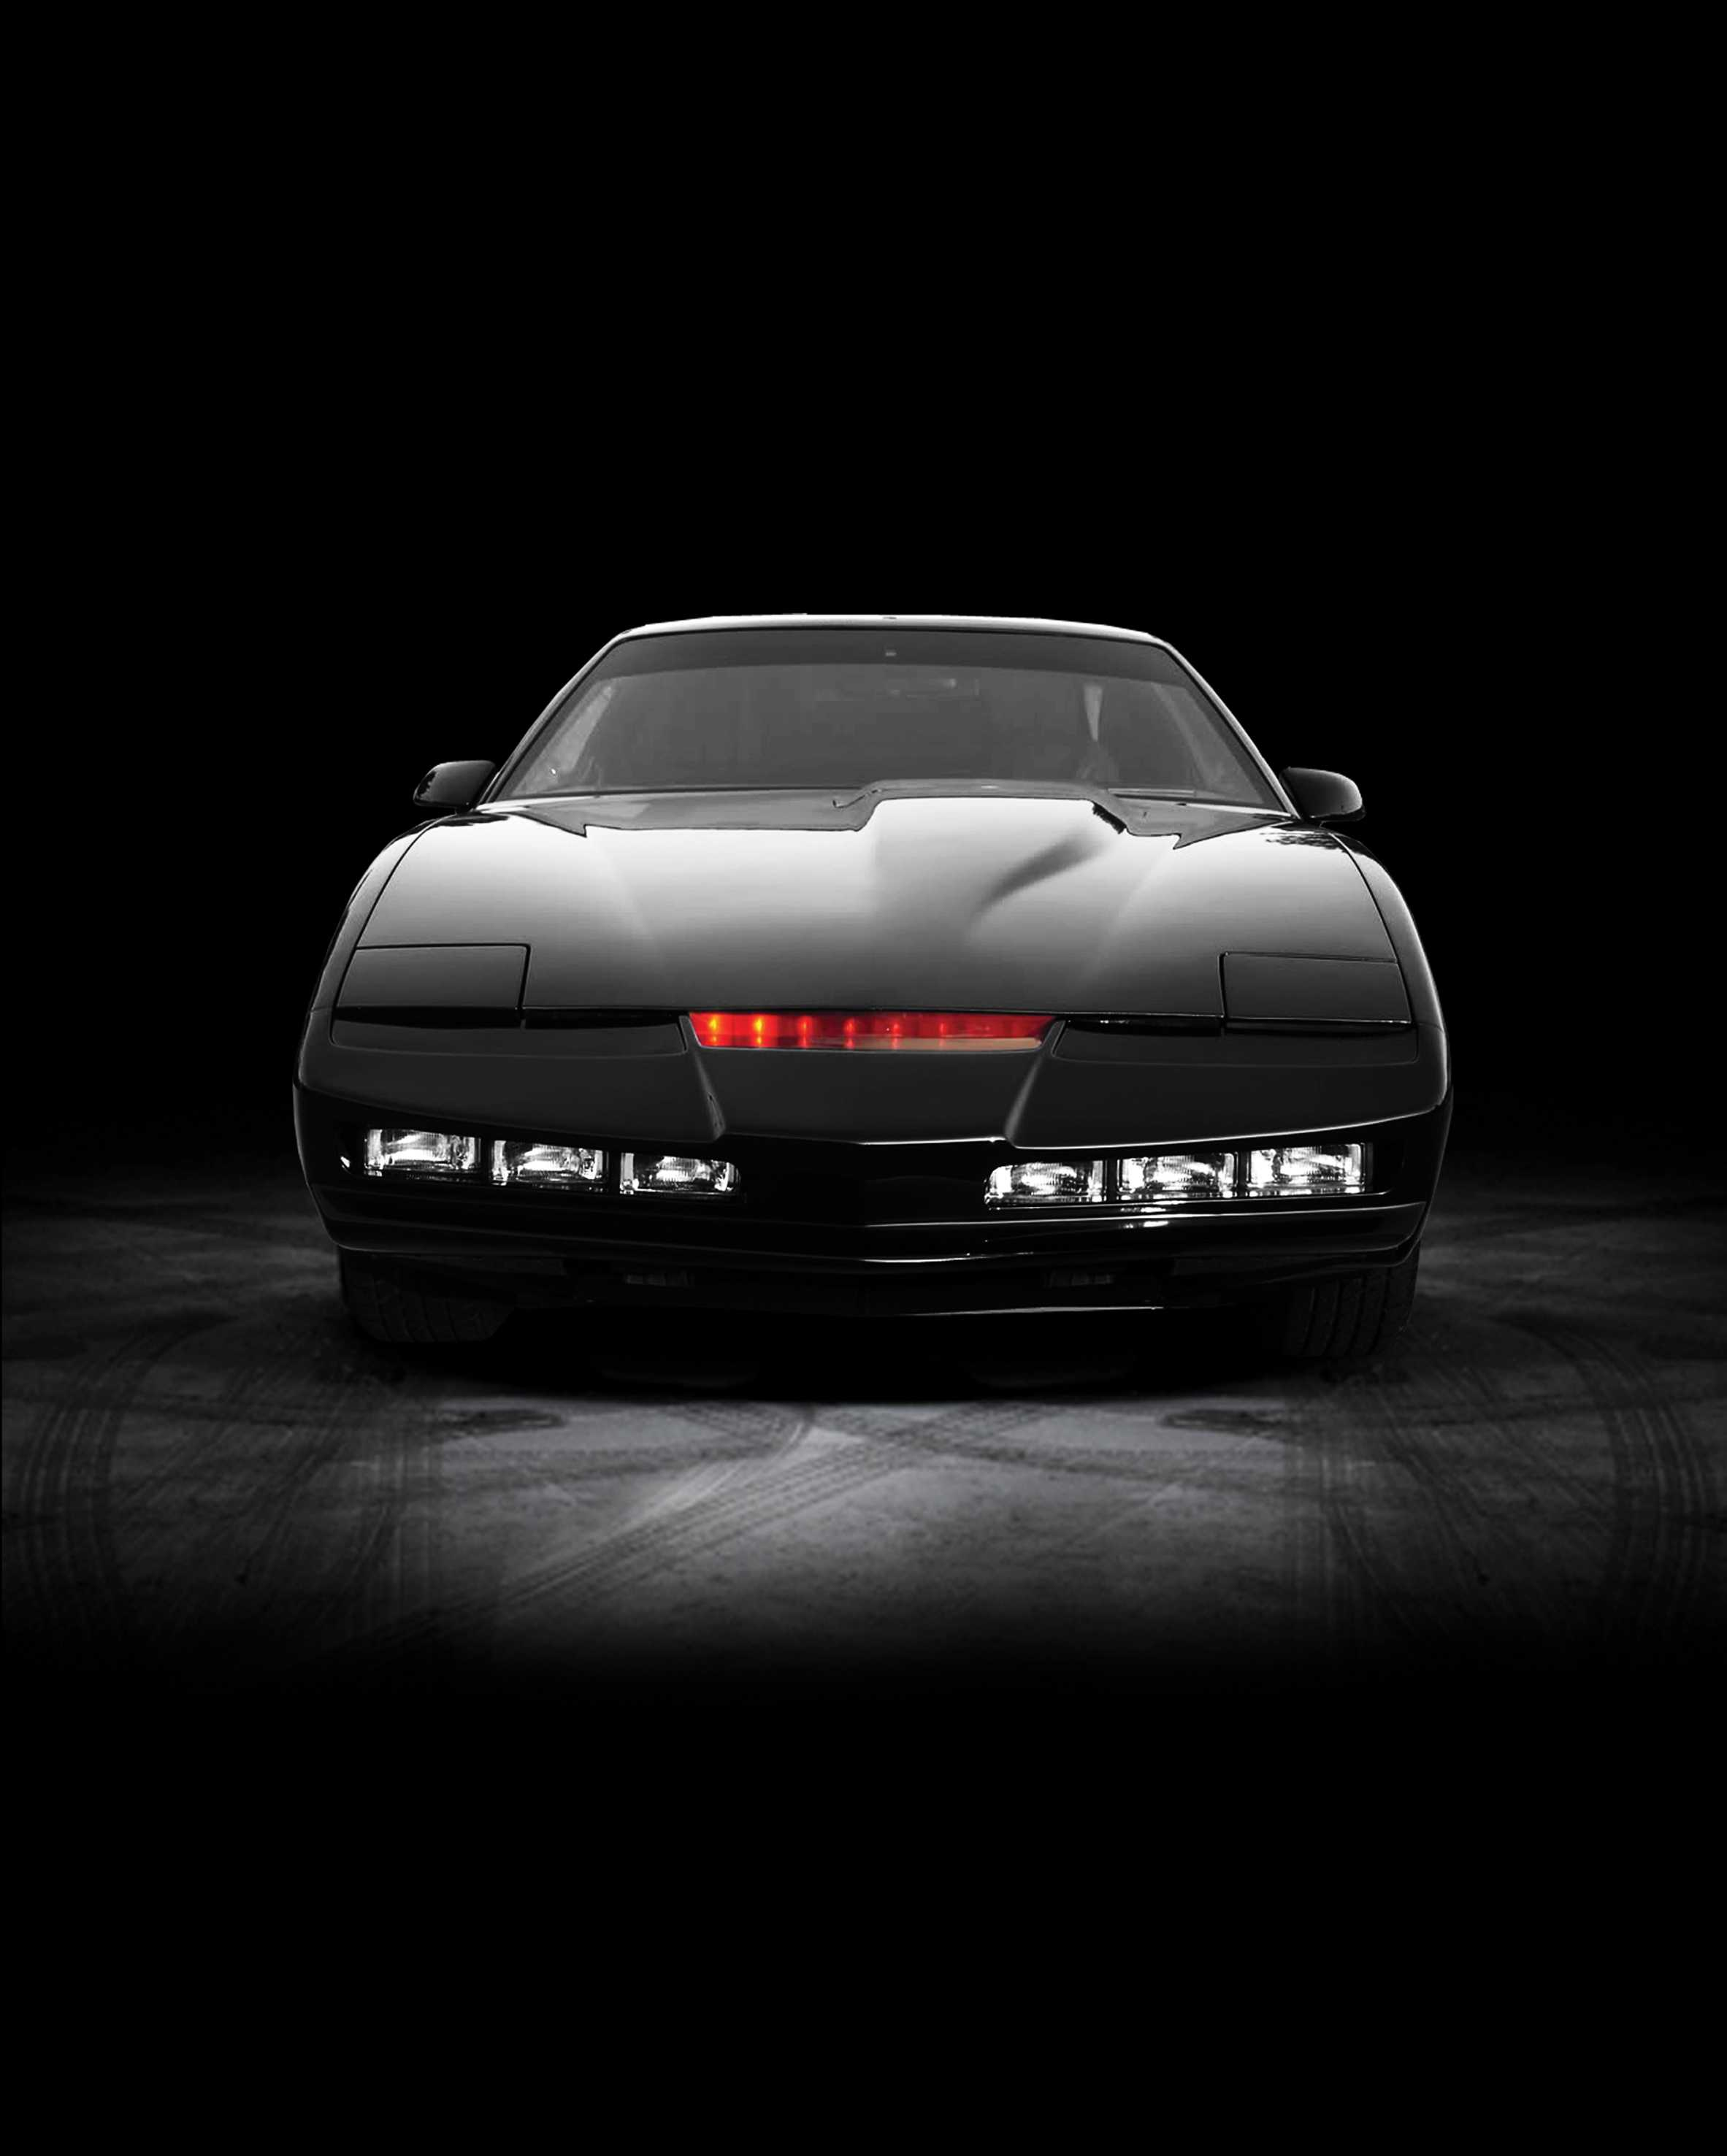 Iam A Rider Song: Place Your Bid Now On This 'Knight Rider' KITT Trans Am